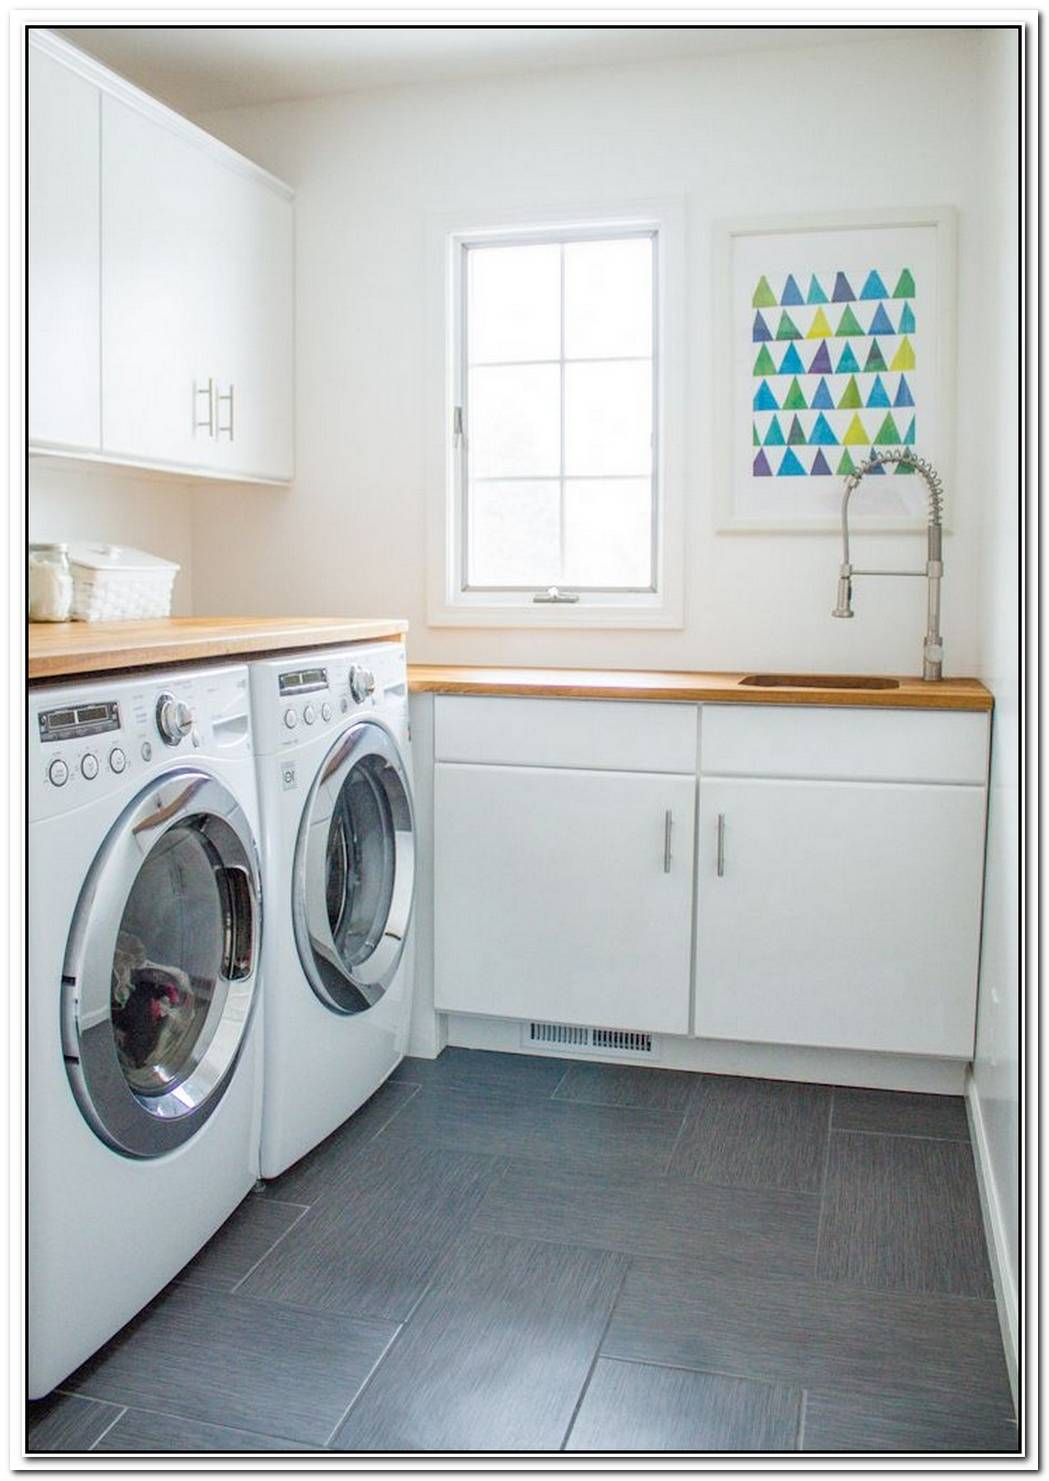 14 Laundry Rooms So Pretty You Might Actually Enjoy Doing Laundry